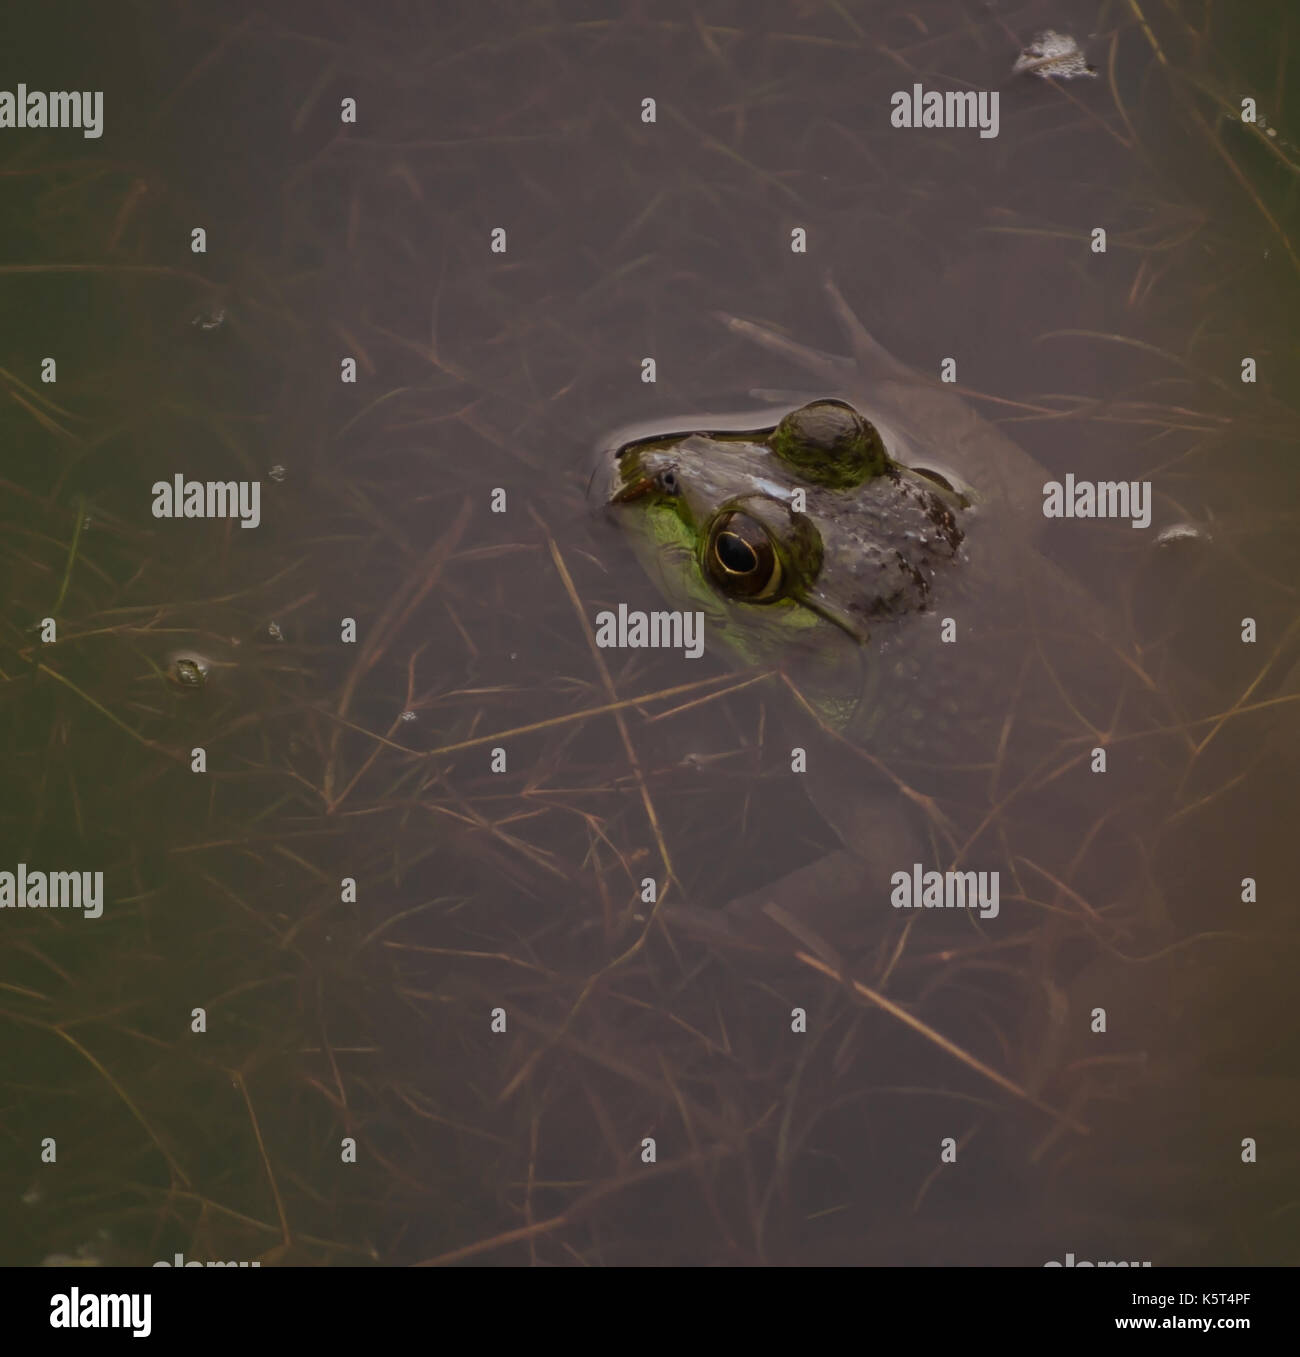 A bull frog partially submerged in a pond with only it's head showing - Stock Image